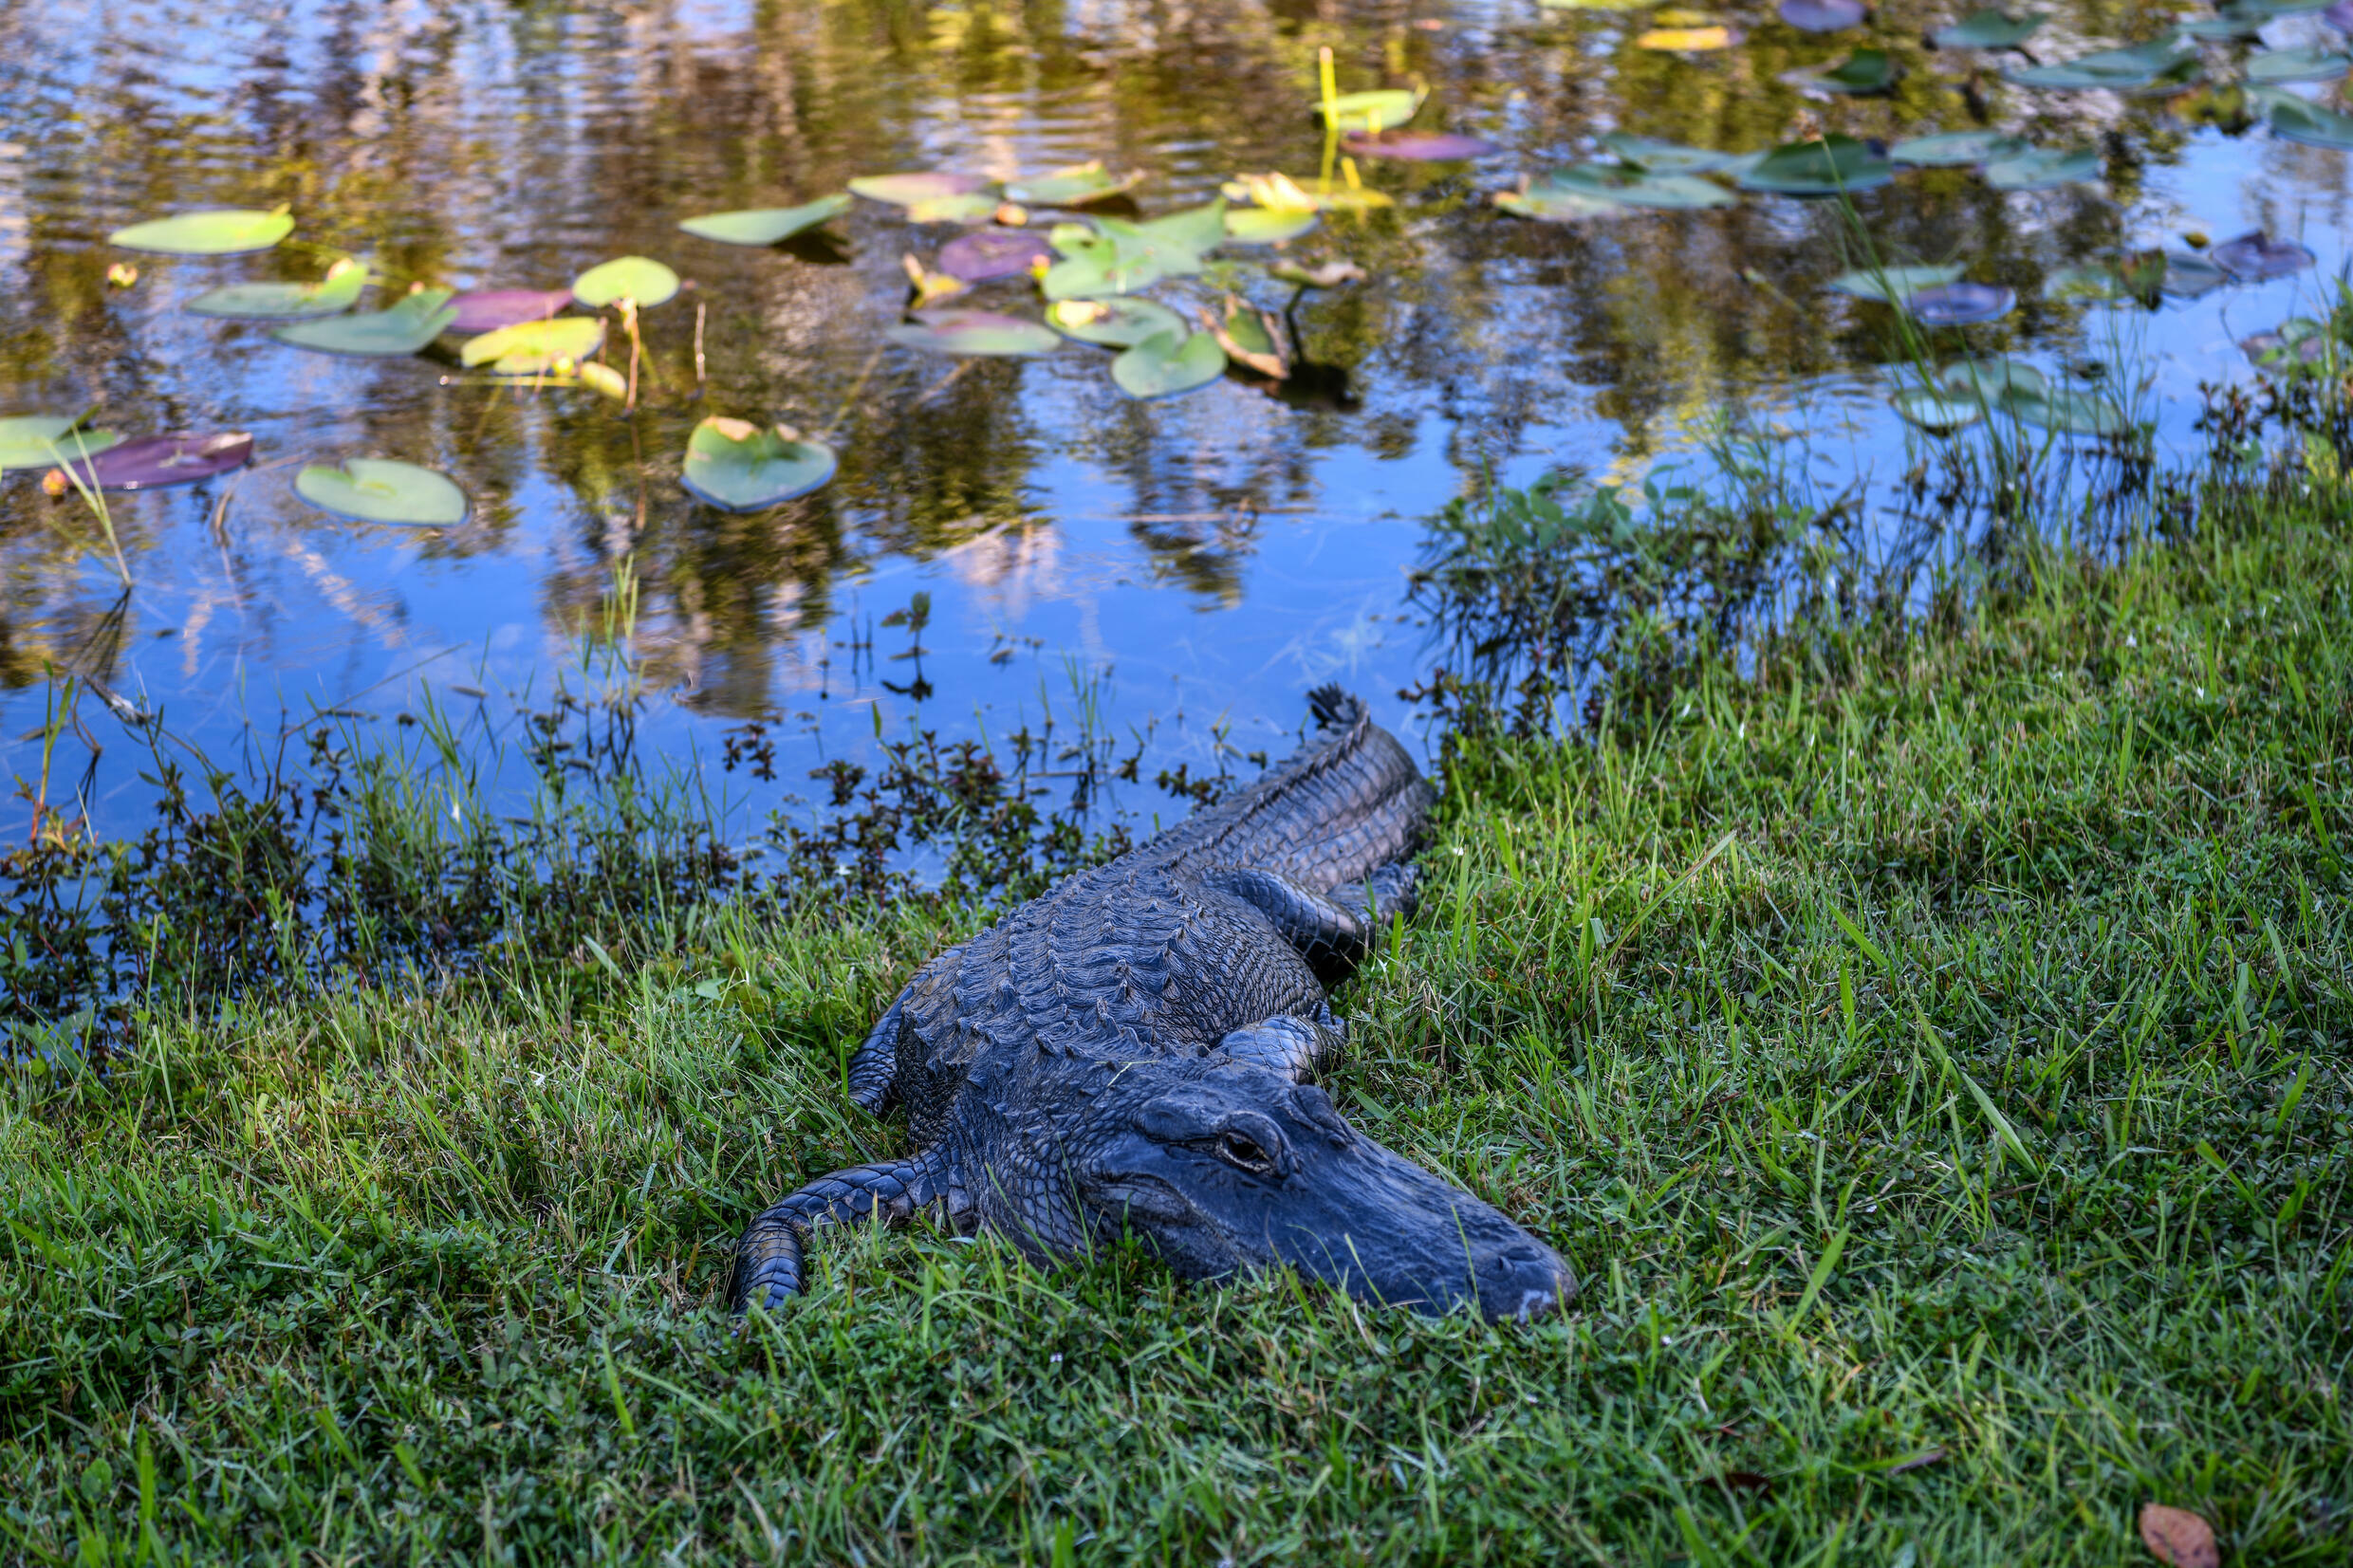 An alligator lays on the grass near a canal in Everglades National Park, Florida on September 30, 2021